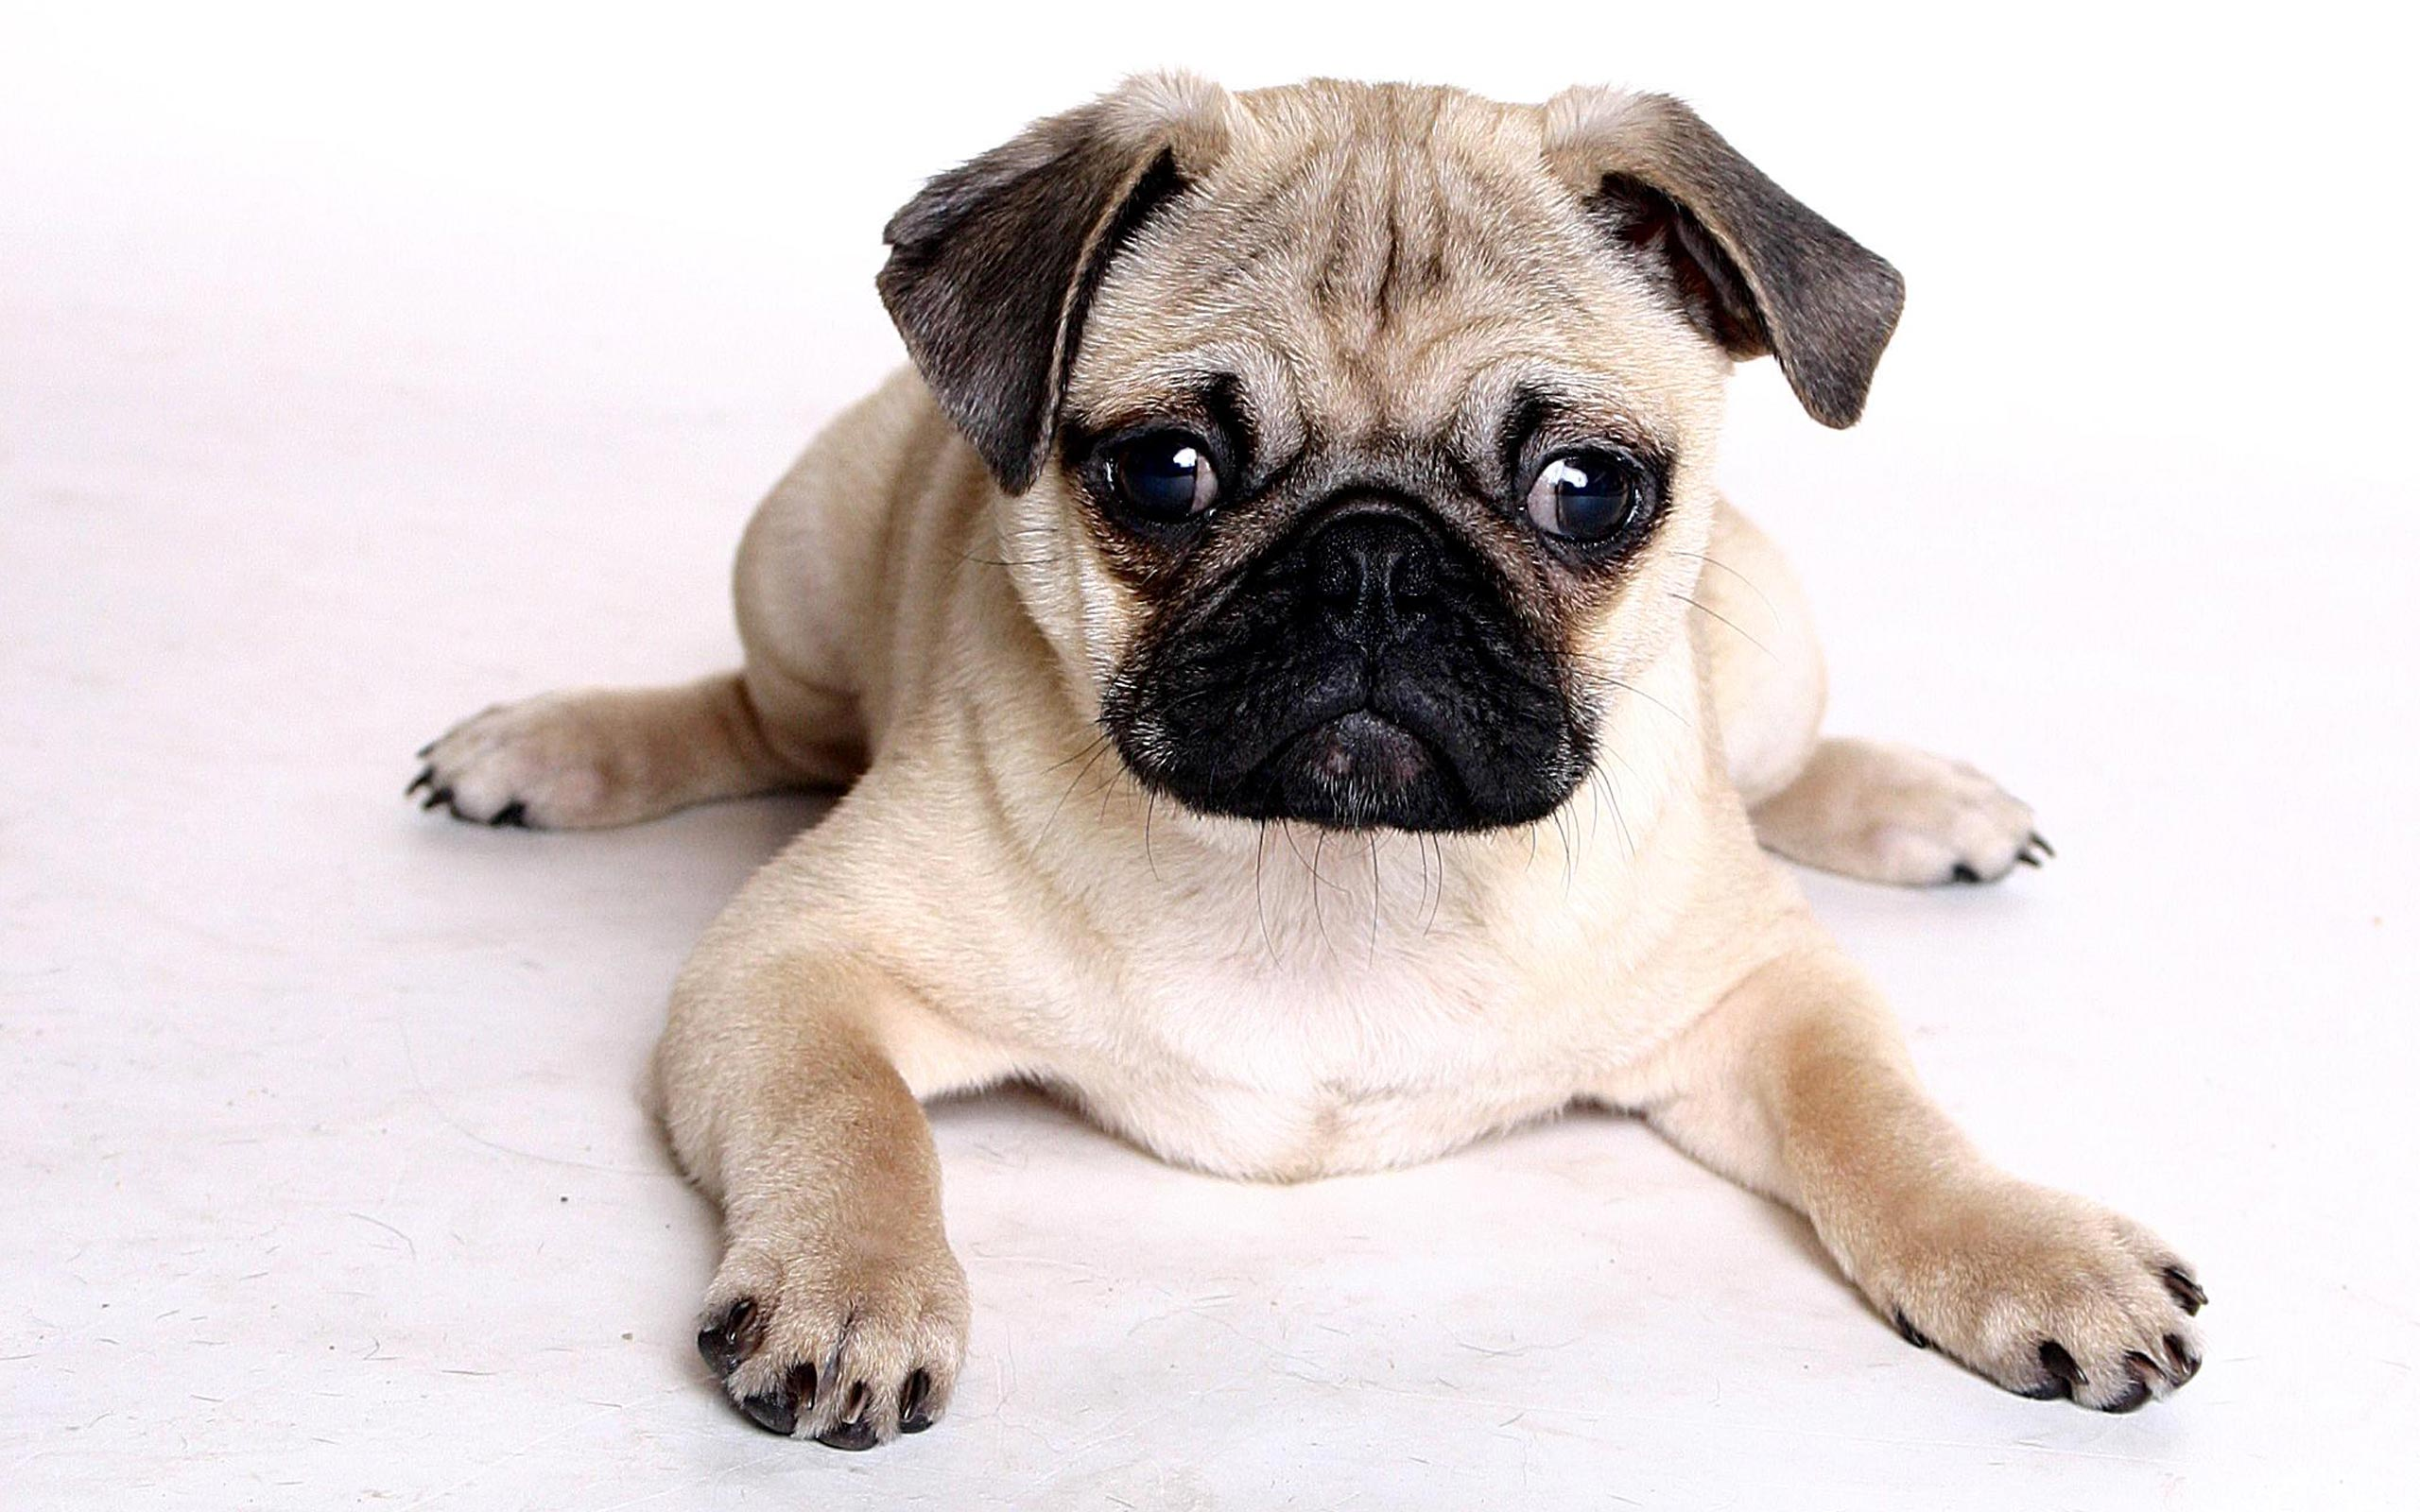 Chinese Pugdog hd wallpapers new beautiful hd wallpapers of pug dog 2560x1600